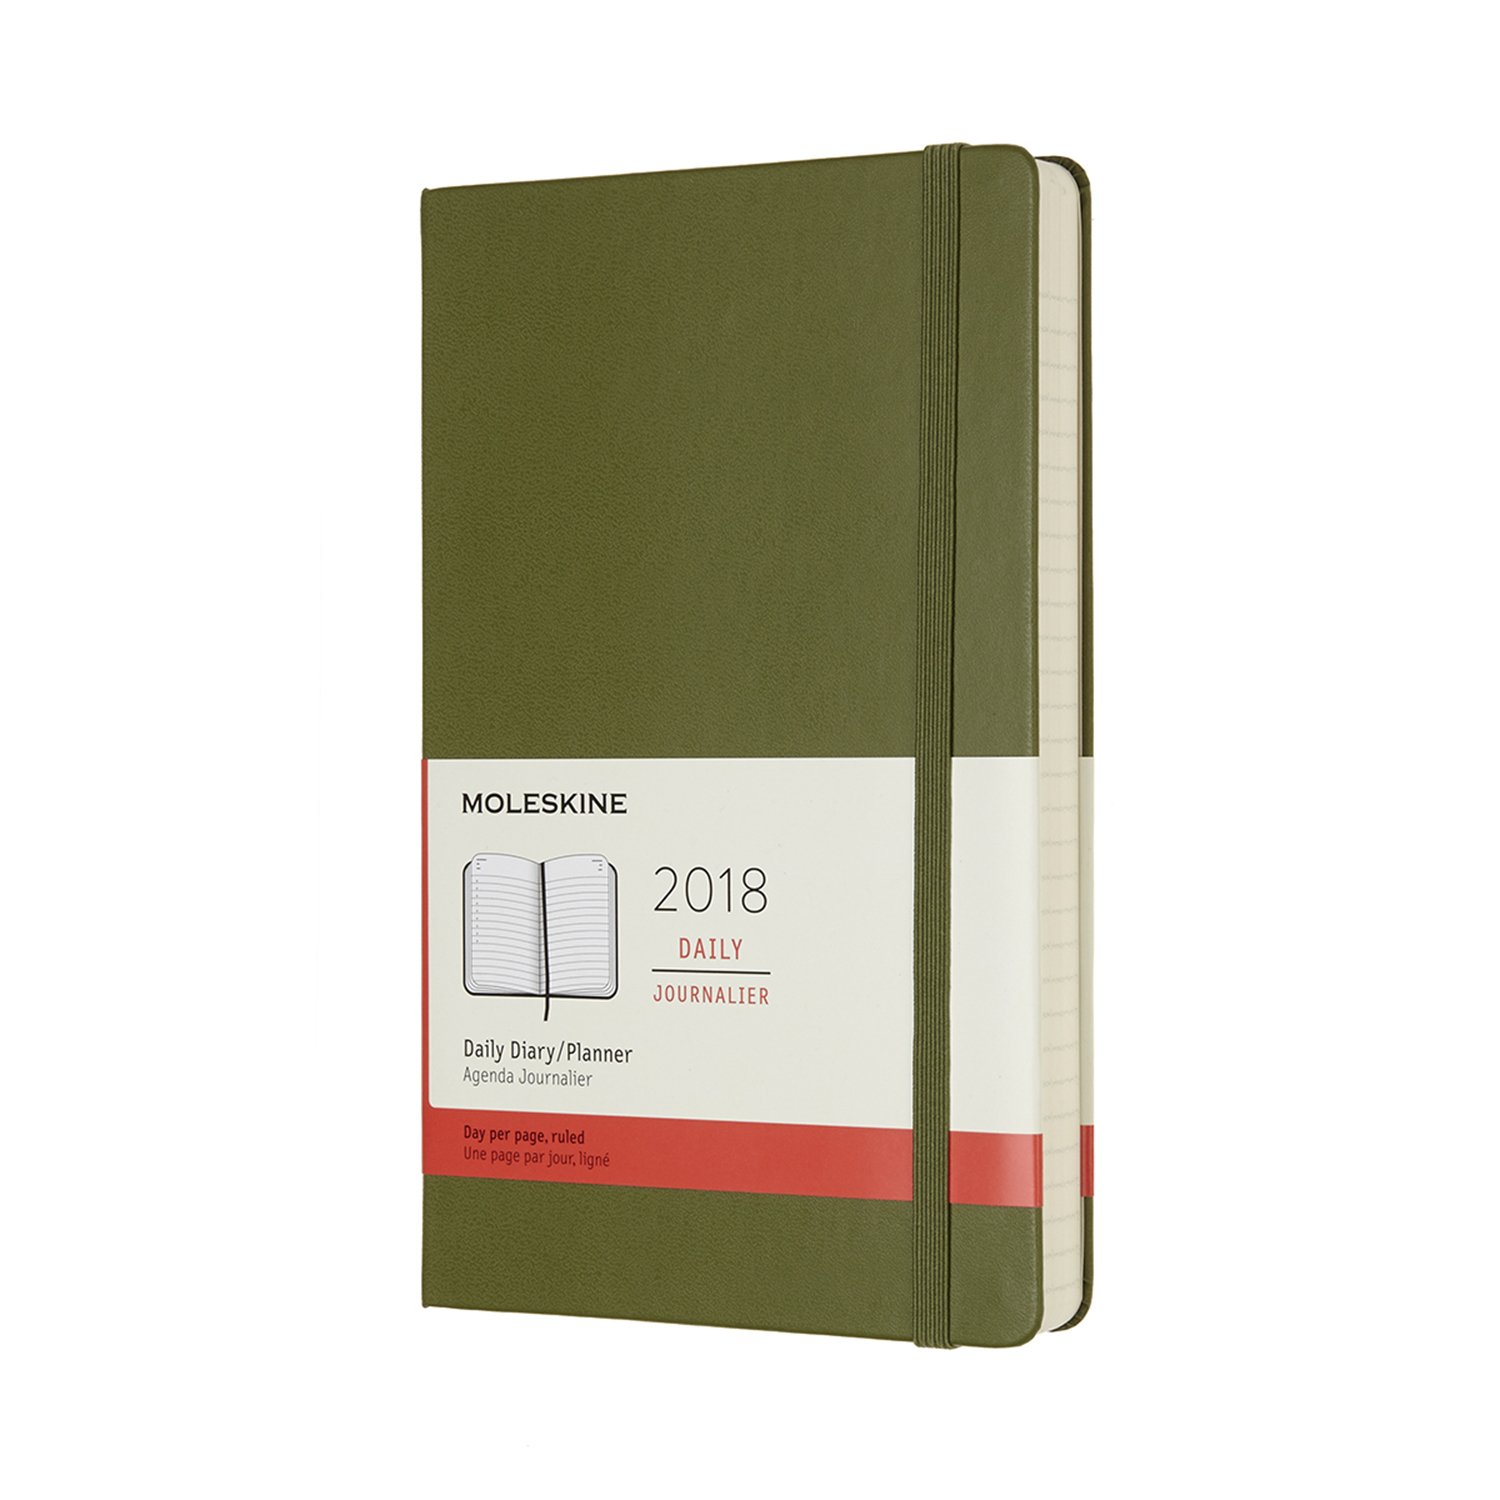 54b8f11a68aa95 2018 Moleskine Elm Green Large Daily Diary 12 Months Hard  Moleskine   Amazon.co.uk  Office Products